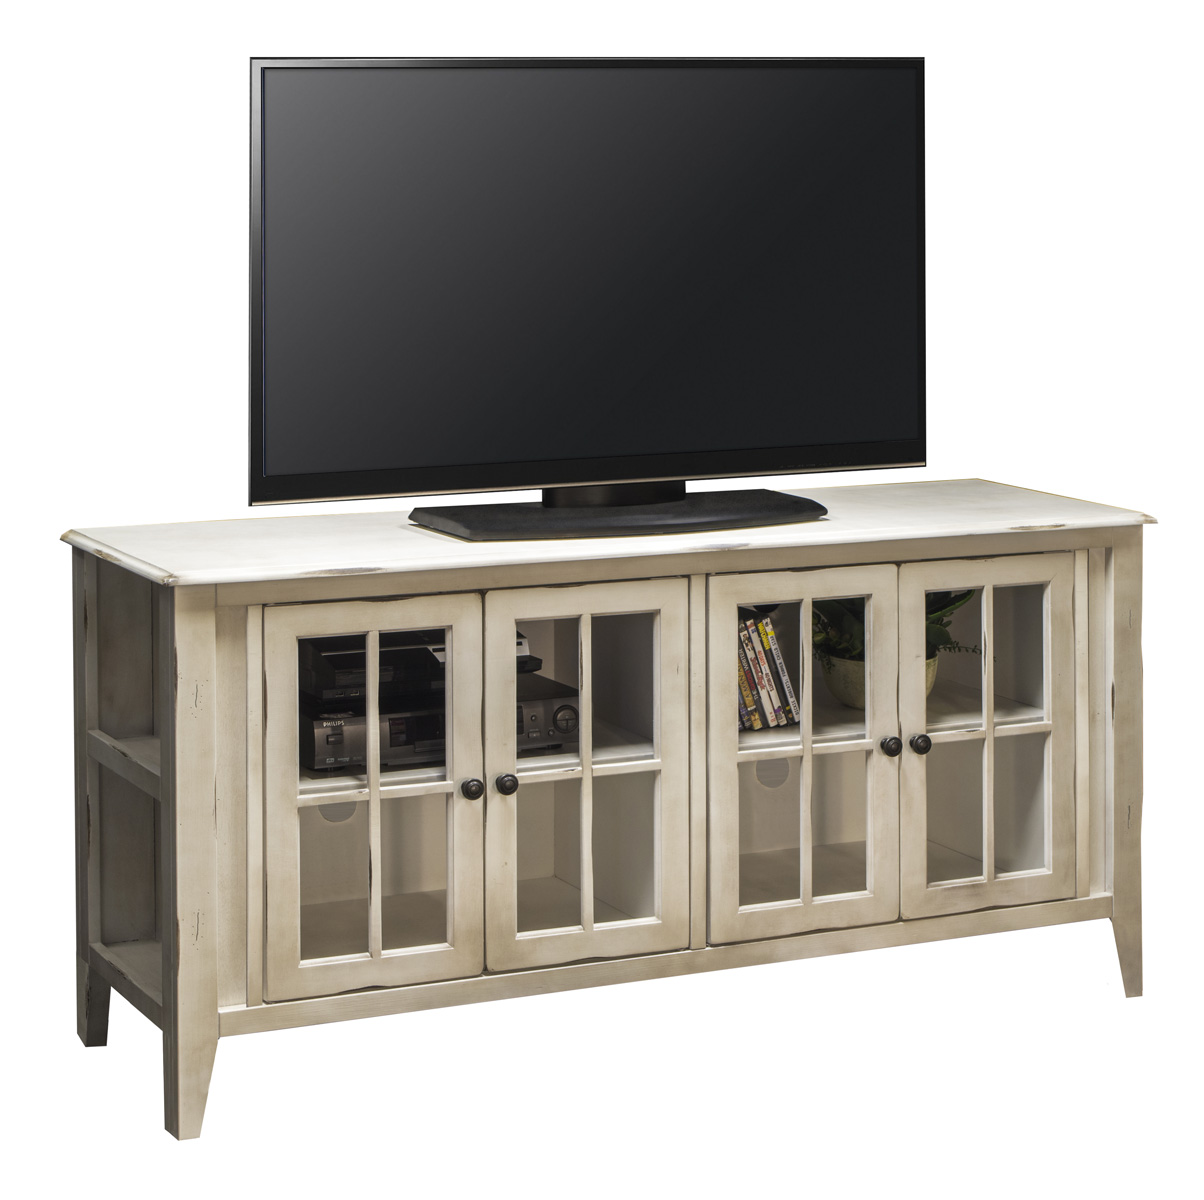 brown legendsfurniture furniture zboh bohemian gray cupboard and htm standard legends bench from